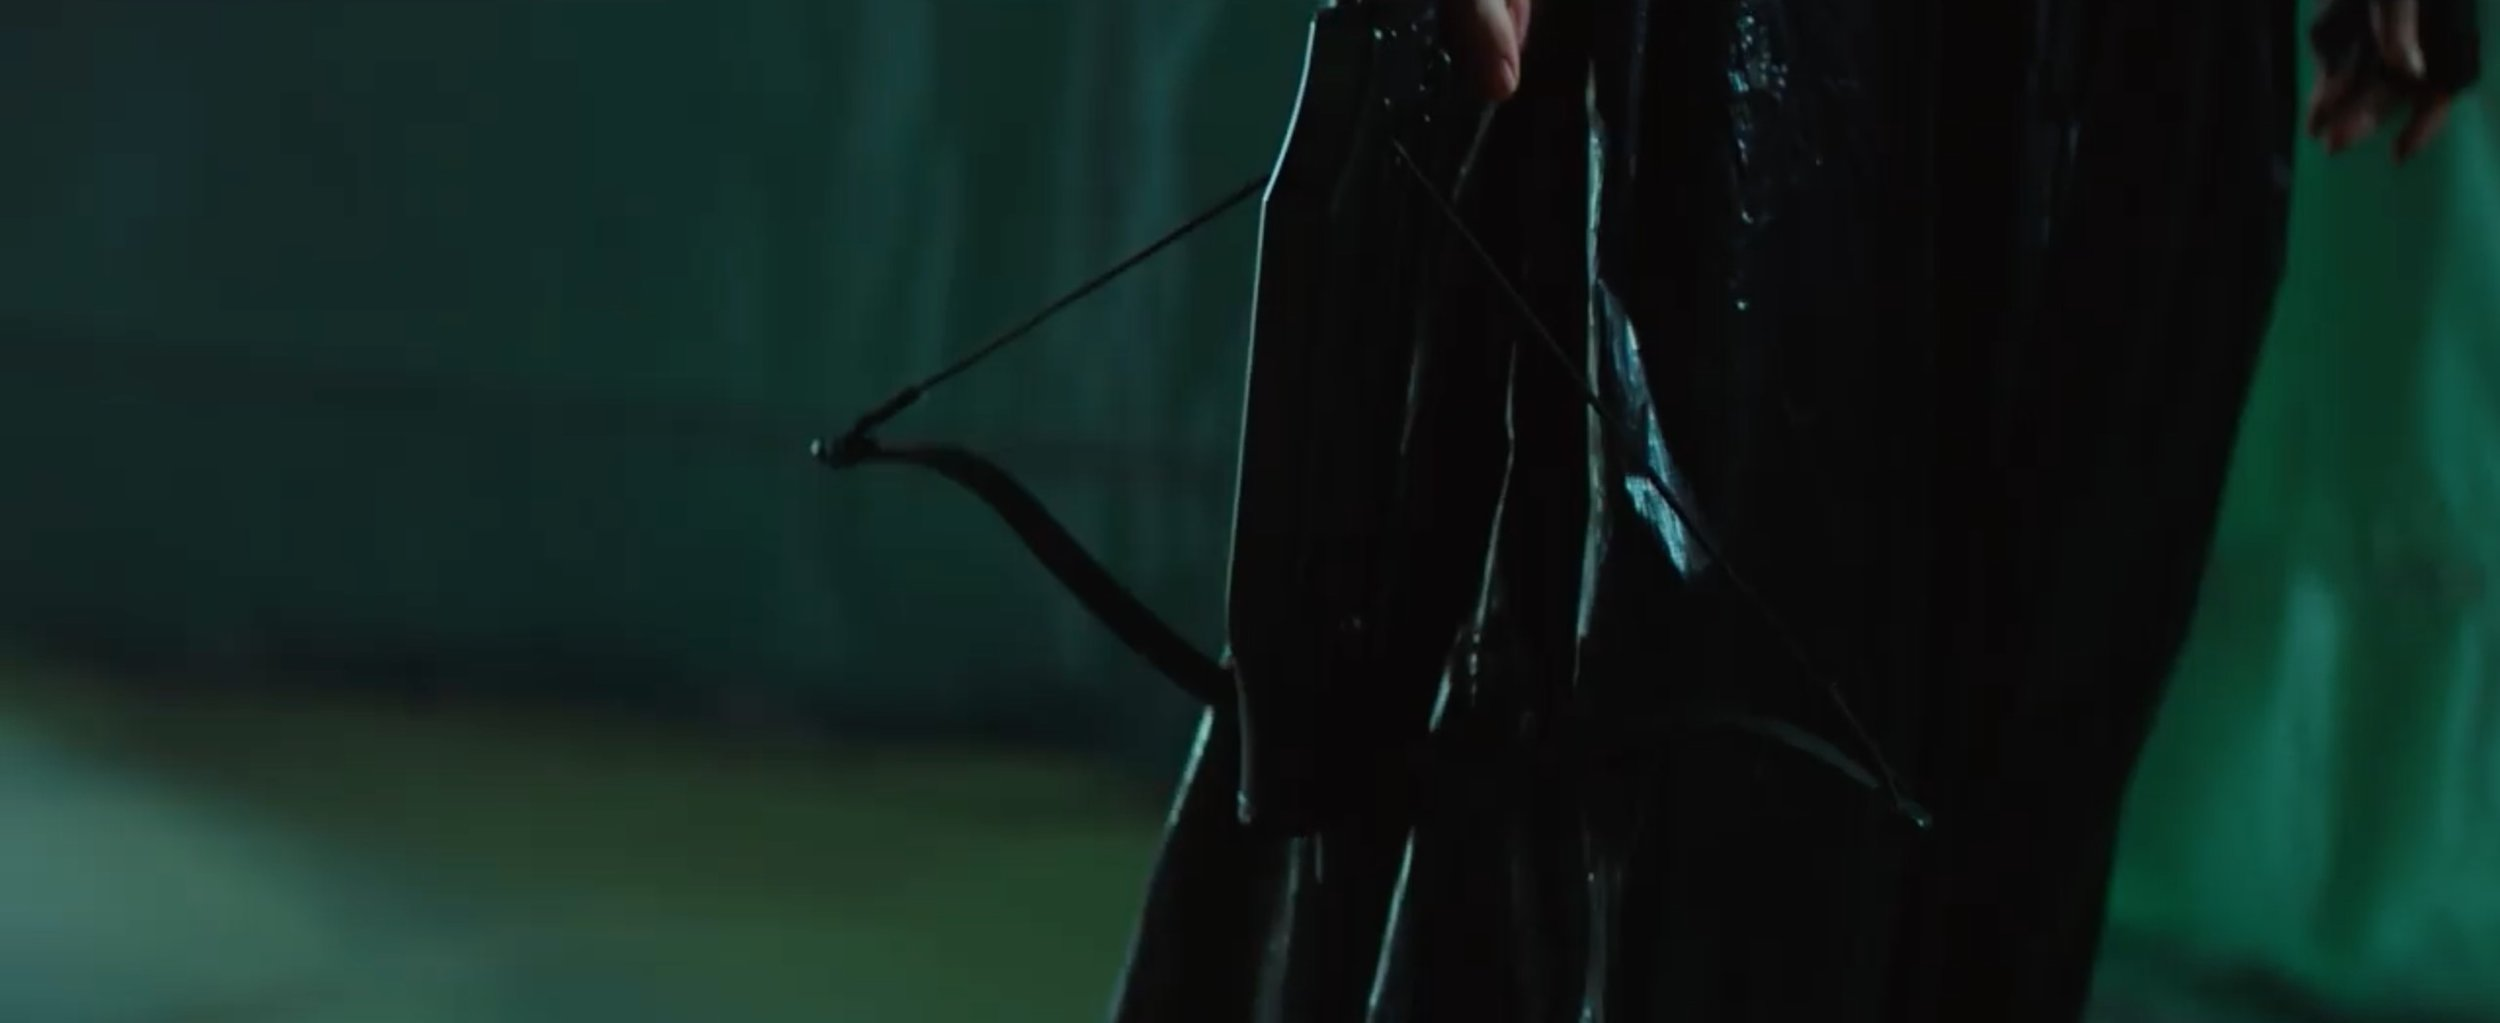 first-bird-of-prey-teaser-trailer-introduces-us-to-all-of-the-main-characters2.jpg